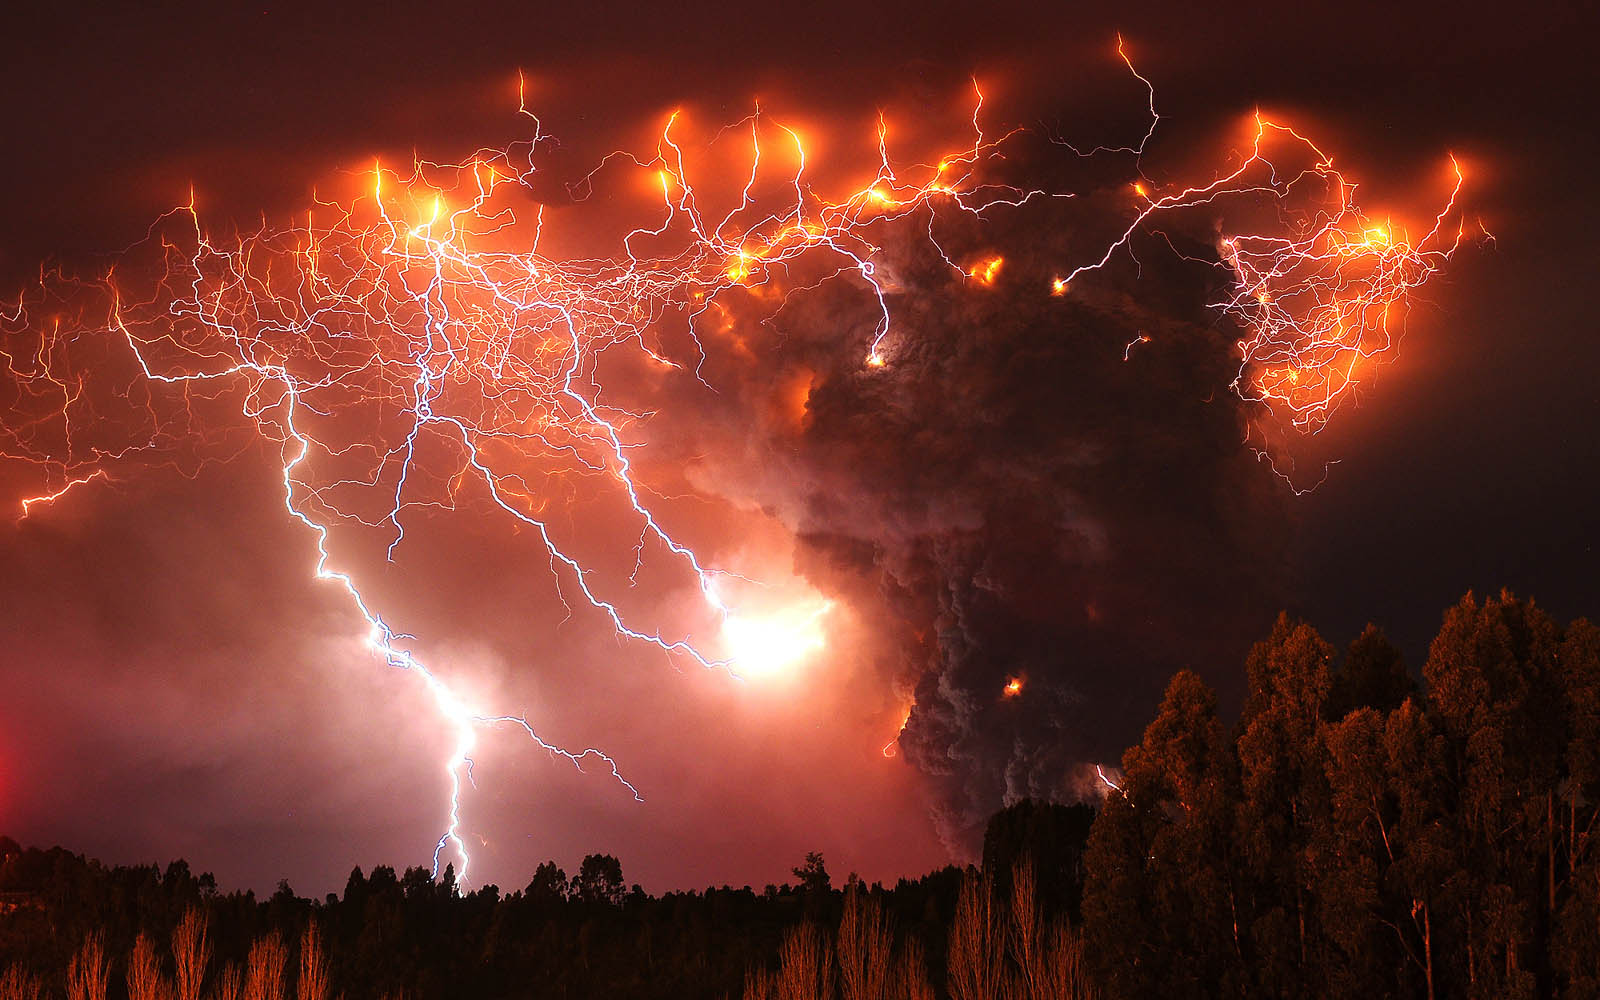 Volcano Erupts Photos Wallpapers Images Pictures and Backgrounds 1600x1000